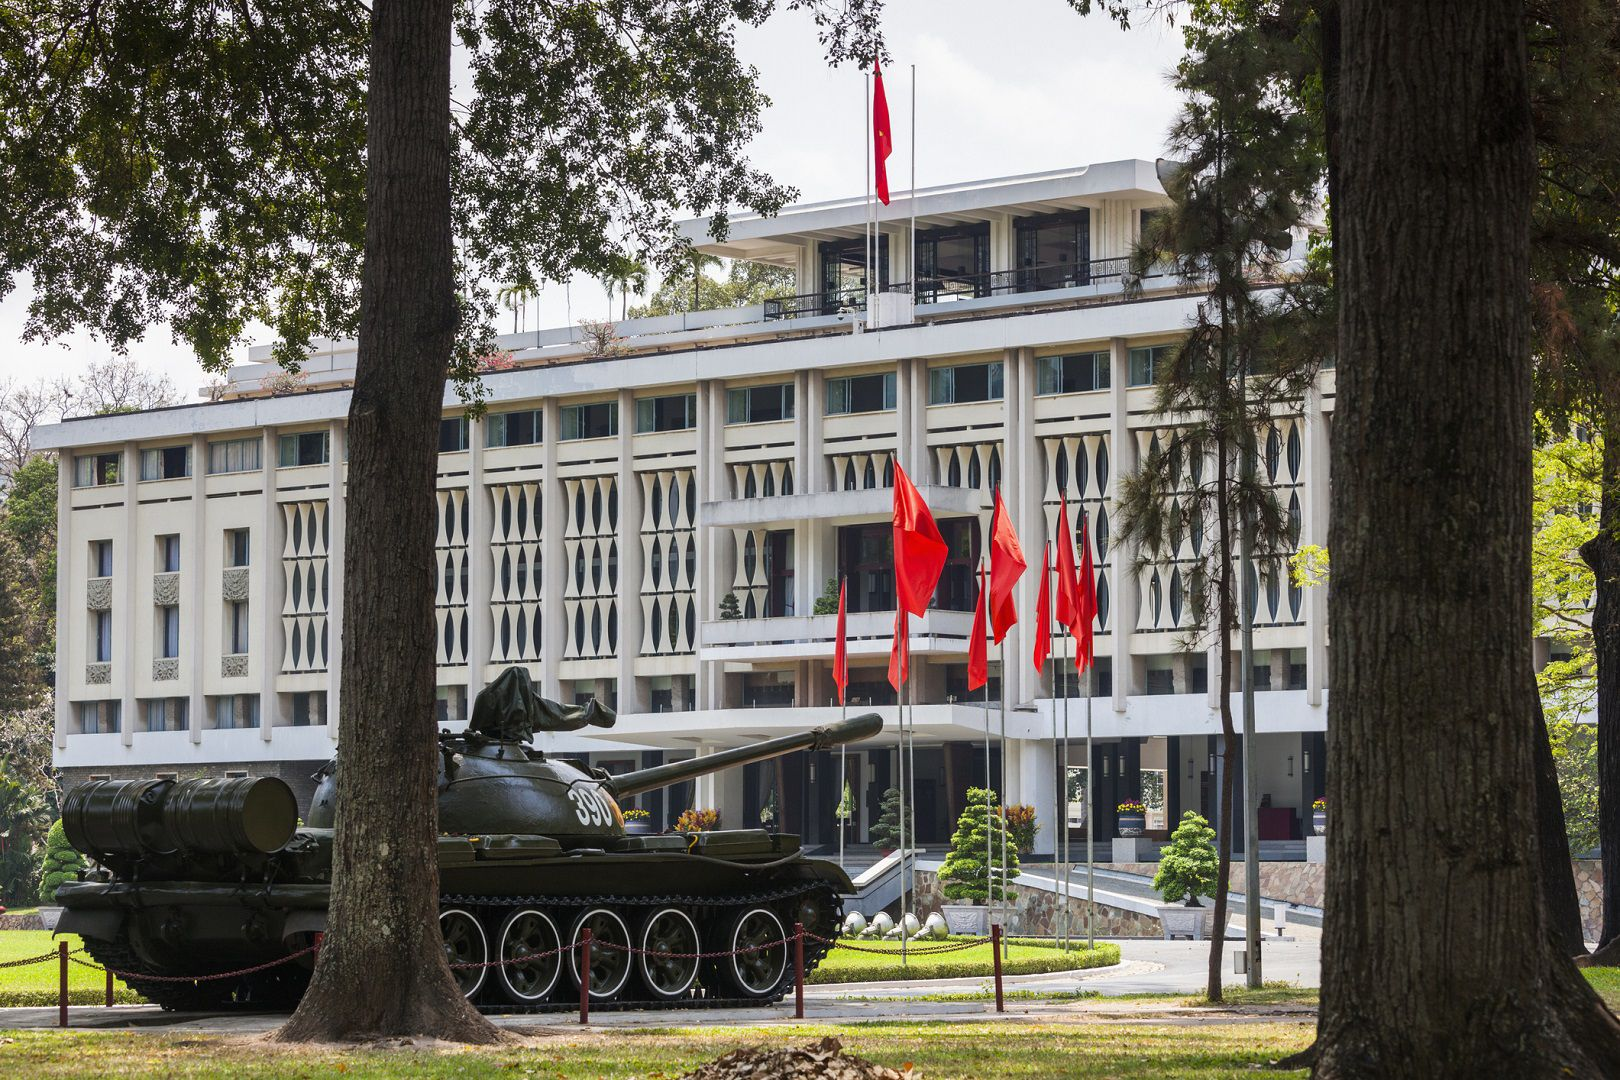 A Visit to the Independence Palace in Saigon, Vietnam